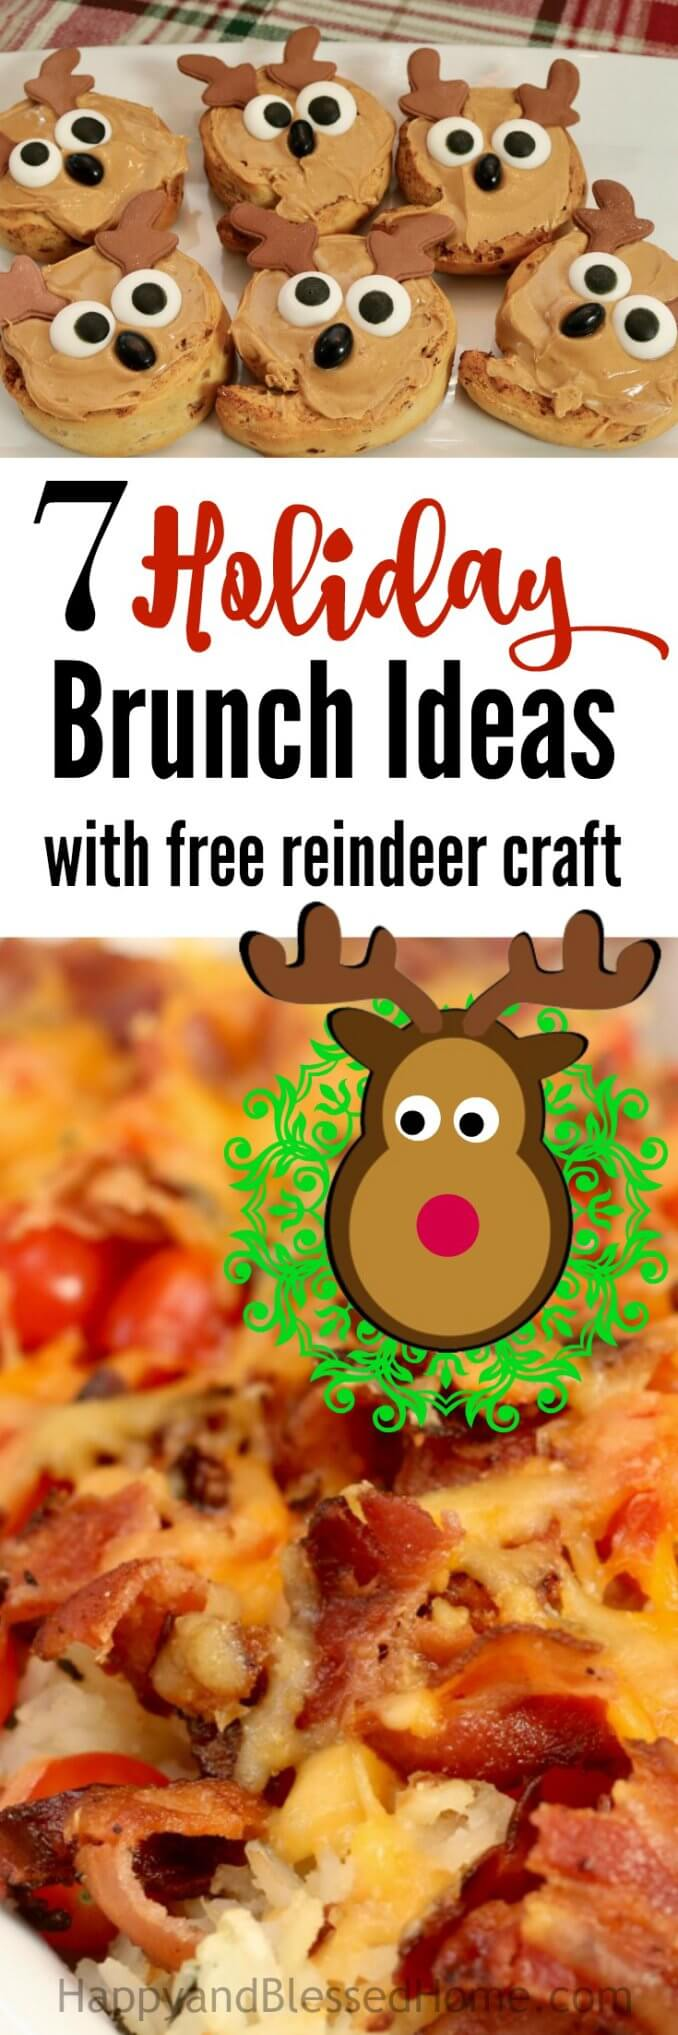 7 Holiday Brunch Ideas for Hosting a Brunch Party including hearty breakfast recipes, family fun activities, tips for making memories and easy clean up. Plus, a FREE reindeer craft for kids!